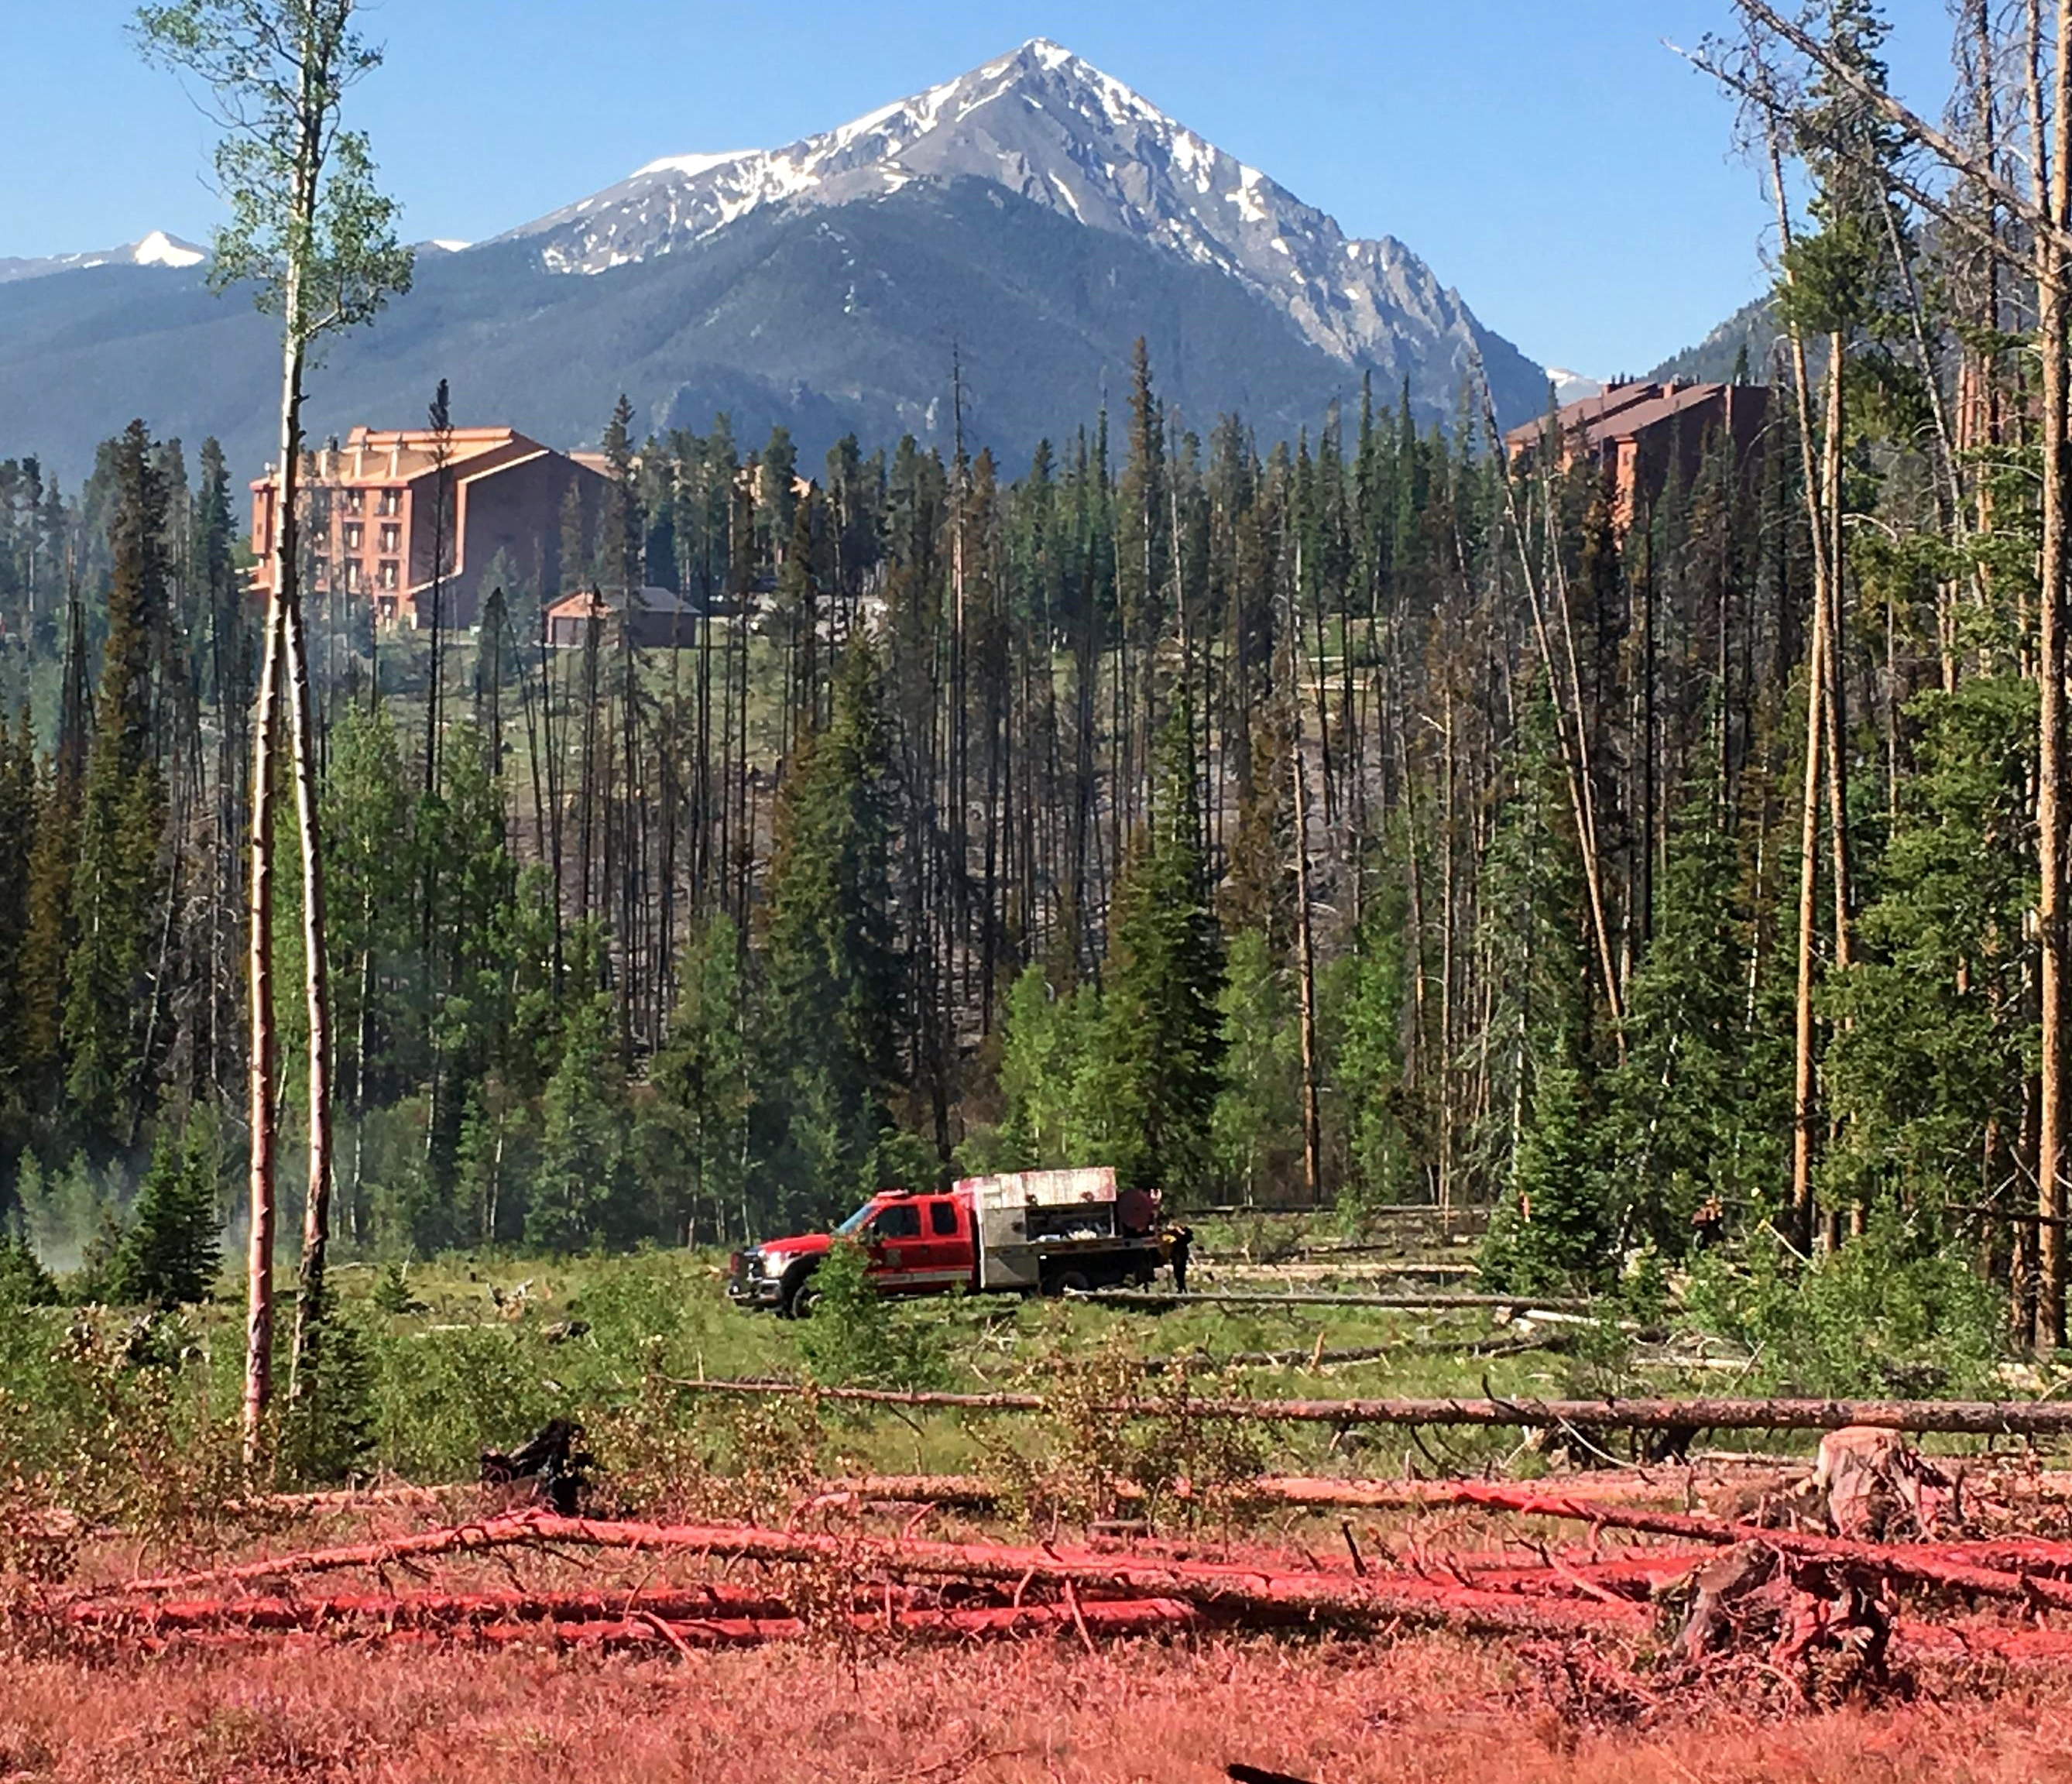 Photo: A tanker sits in the center of a green clearing. Slurry (fire retardant) covers the foreground.